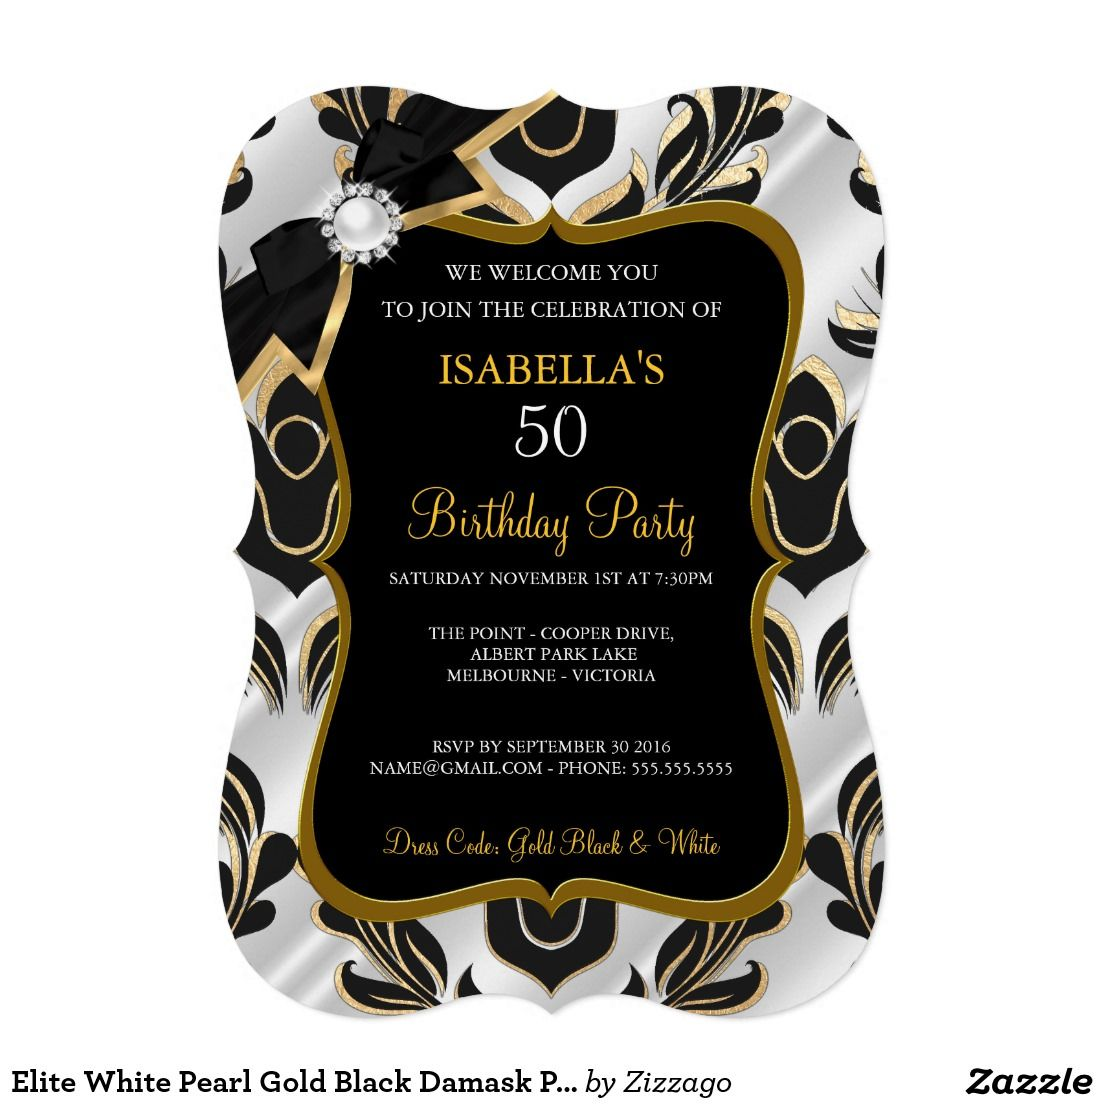 Elite White Pearl Gold Black Damask Party Invite | Womens & Girls ...